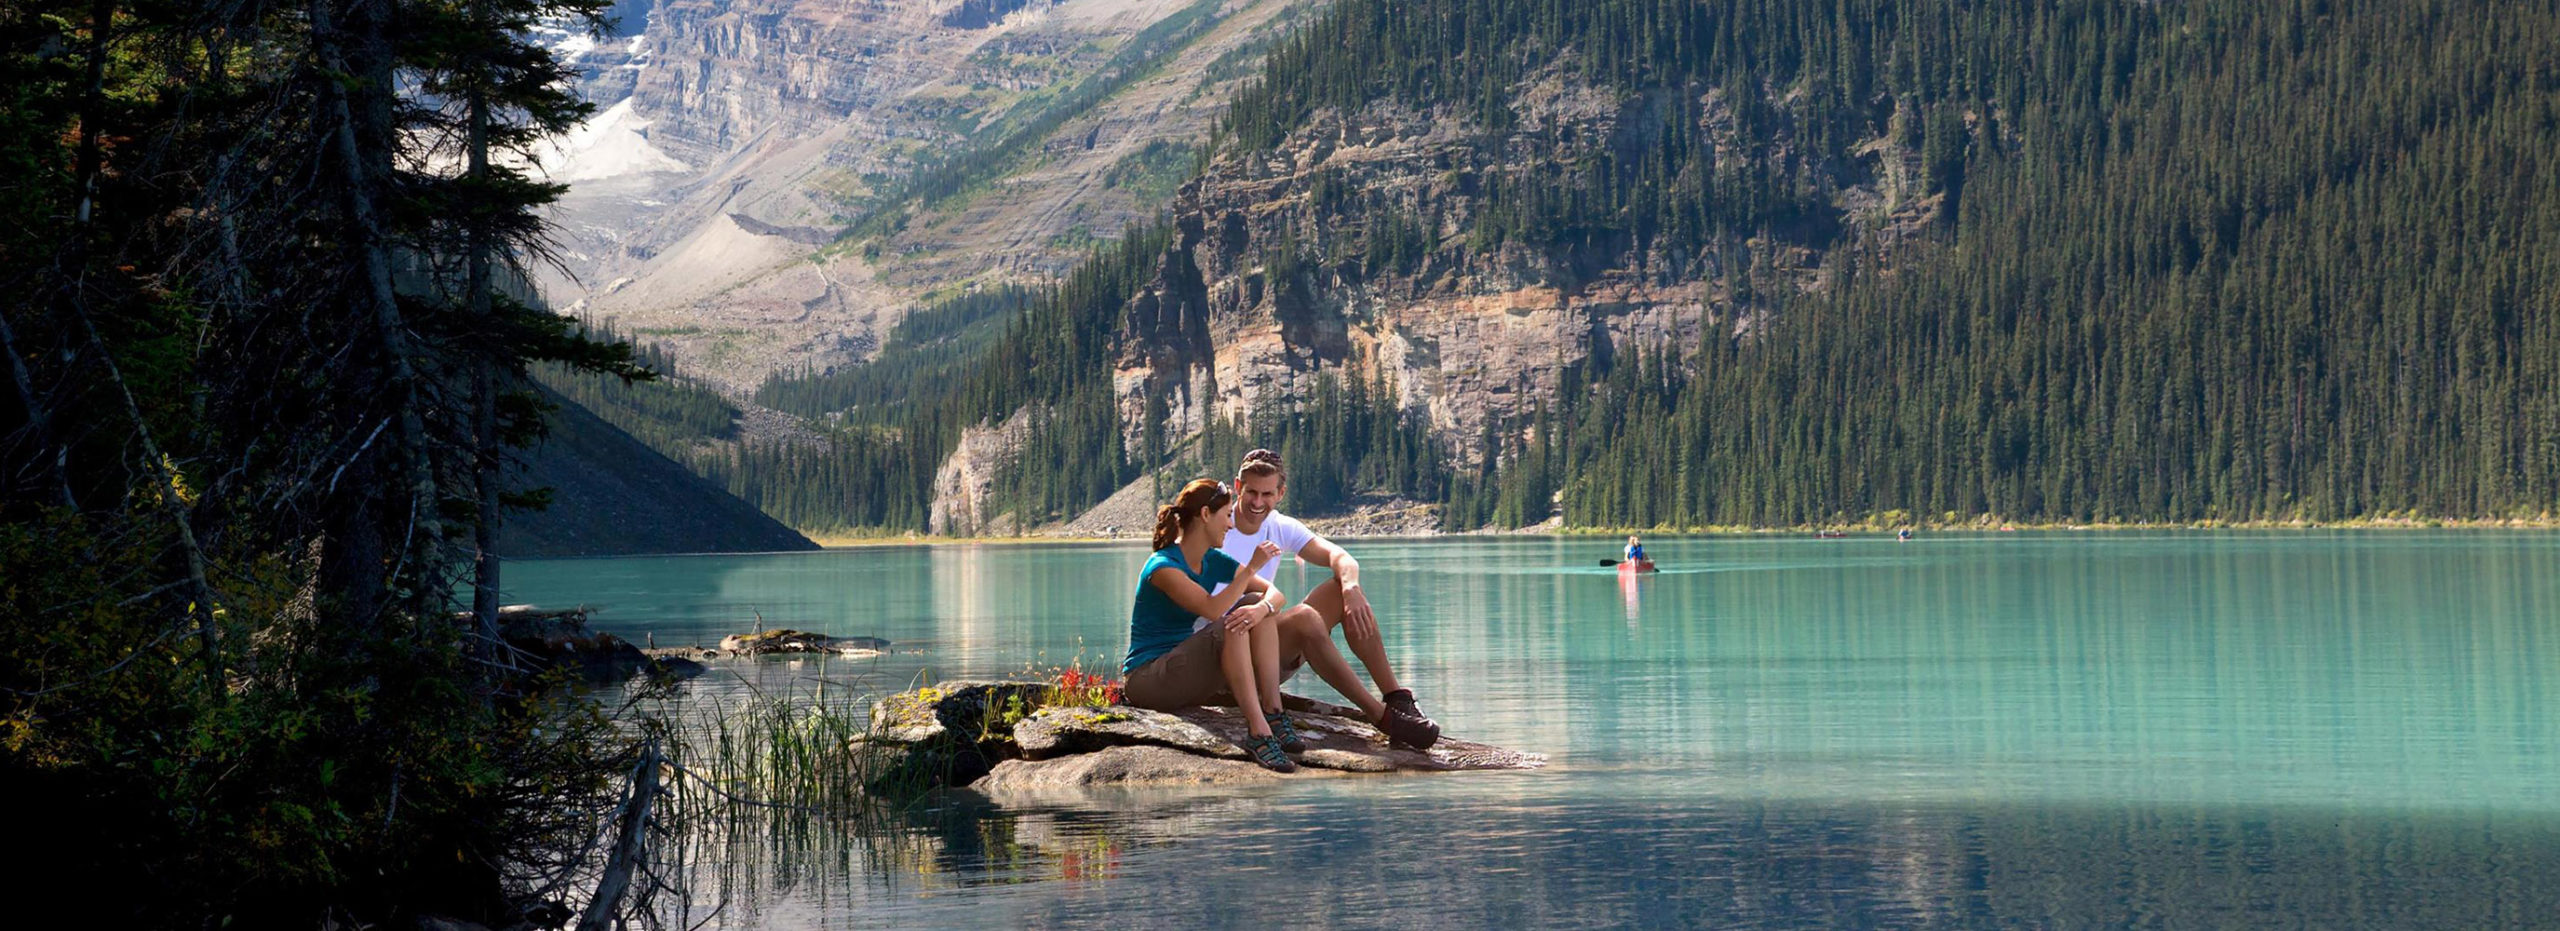 couple sitting together at lake louise shore